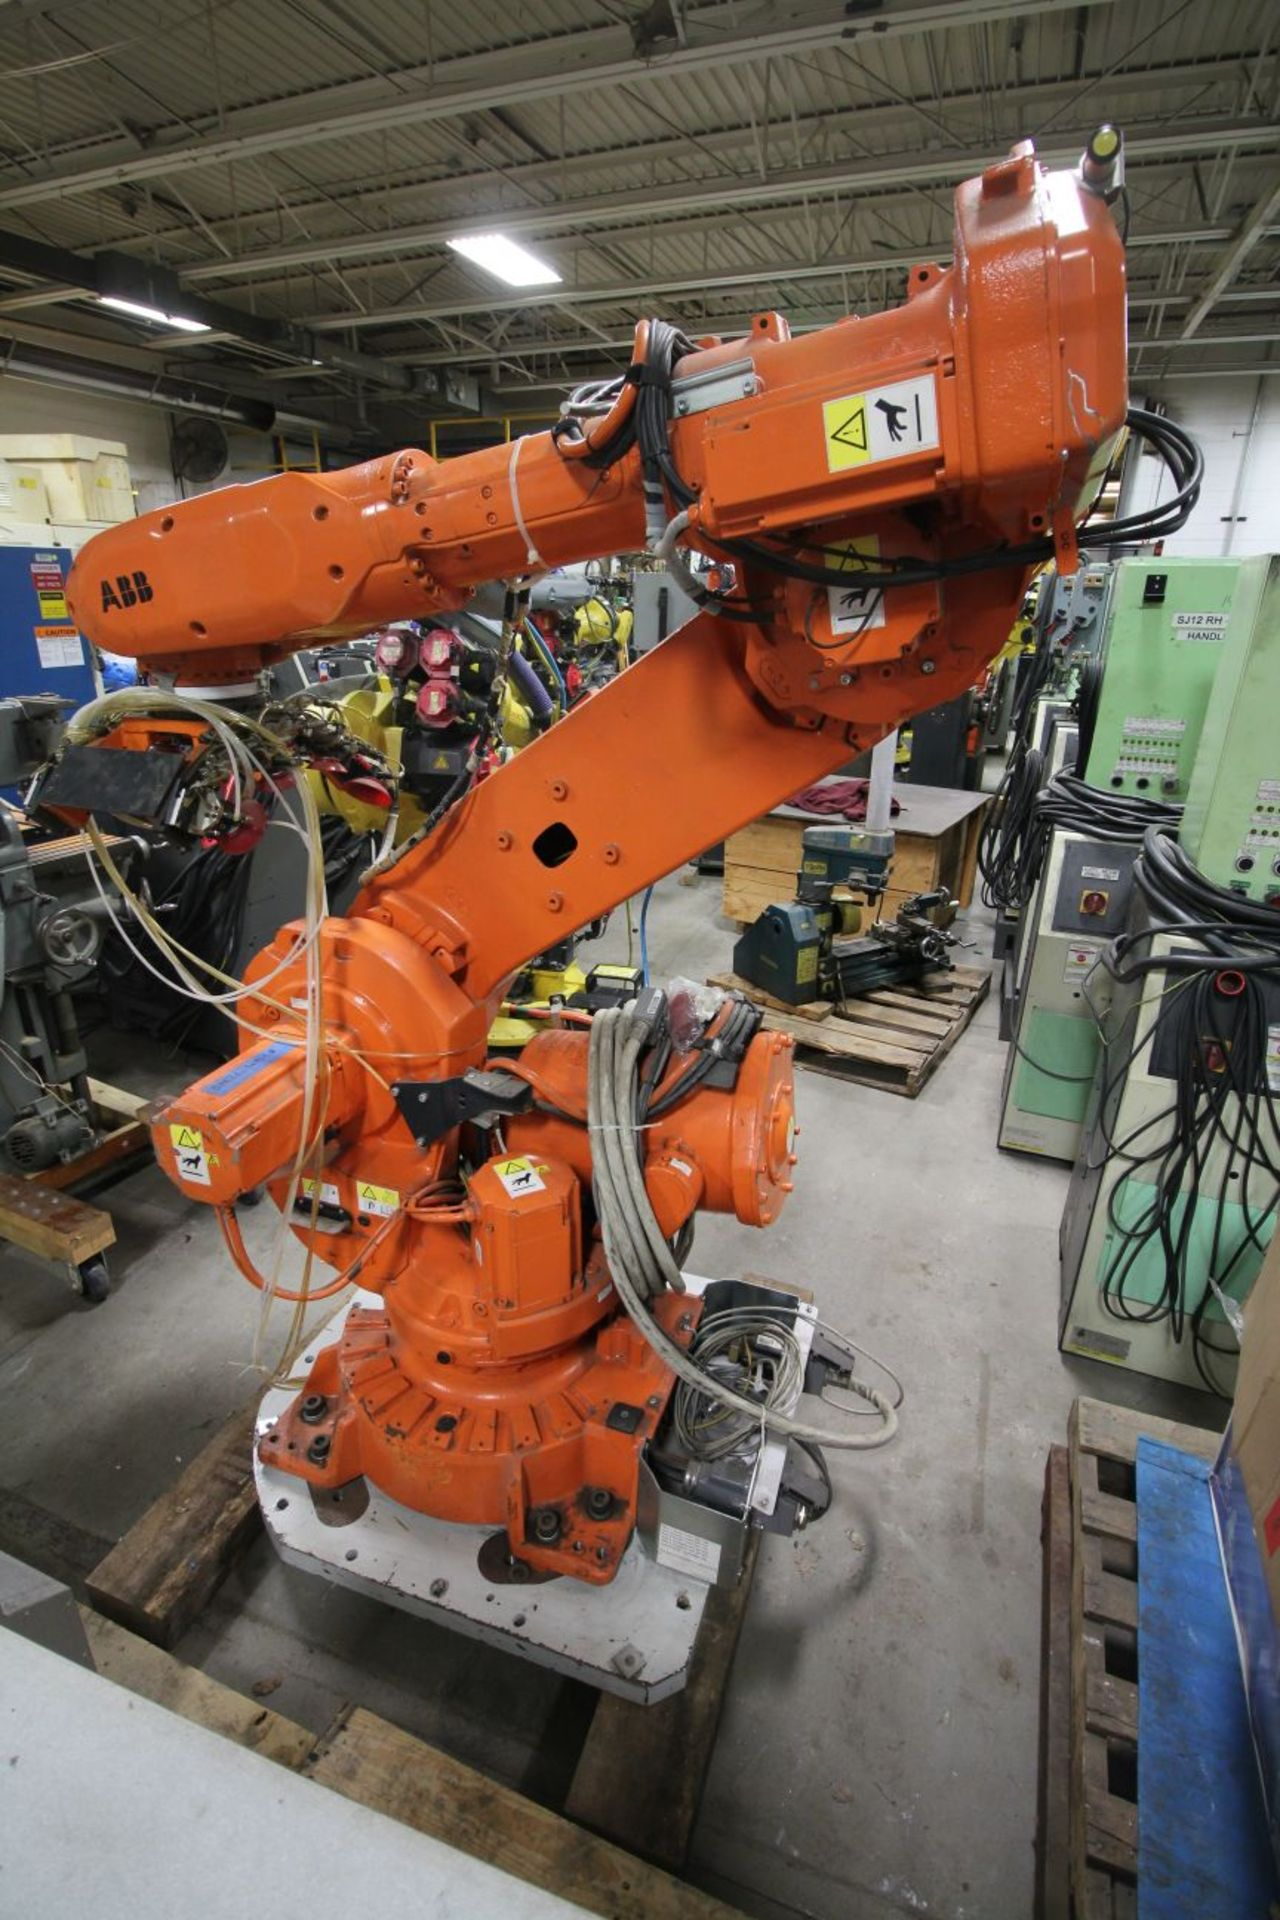 Lot 2 - ABB ROBOT IRB 6640 2.75/205KG WITH IRC5 CONTROLS, YEAR 2013 SN 501478